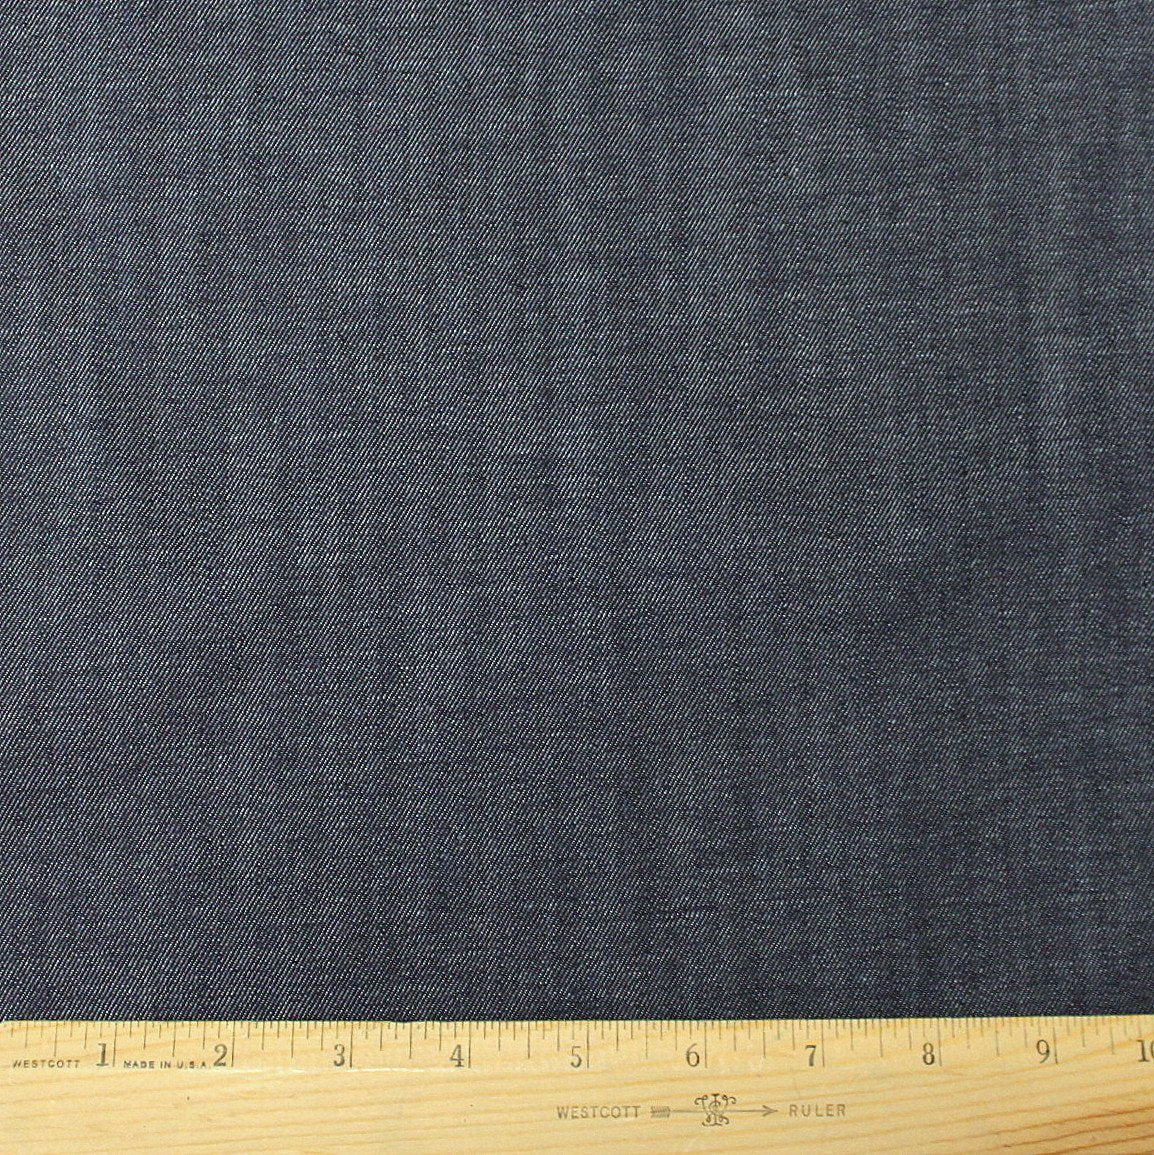 Medium Indigo Medium Weight Cone Mills Stretch Denim, 1 yard